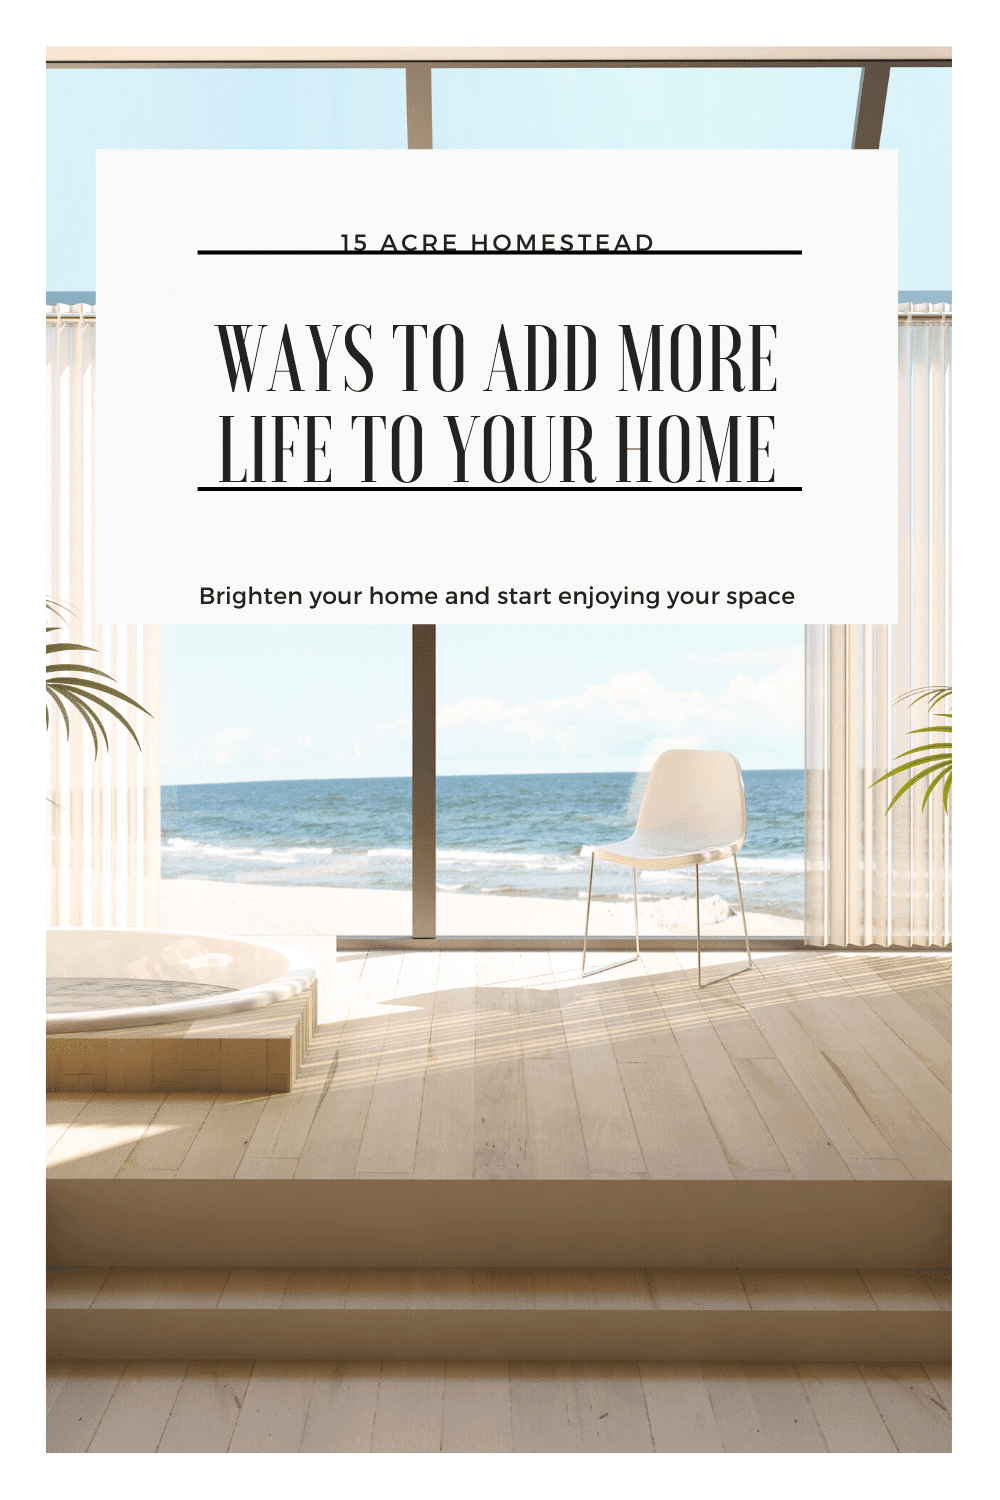 Use these simple tips to bring life back into your home!